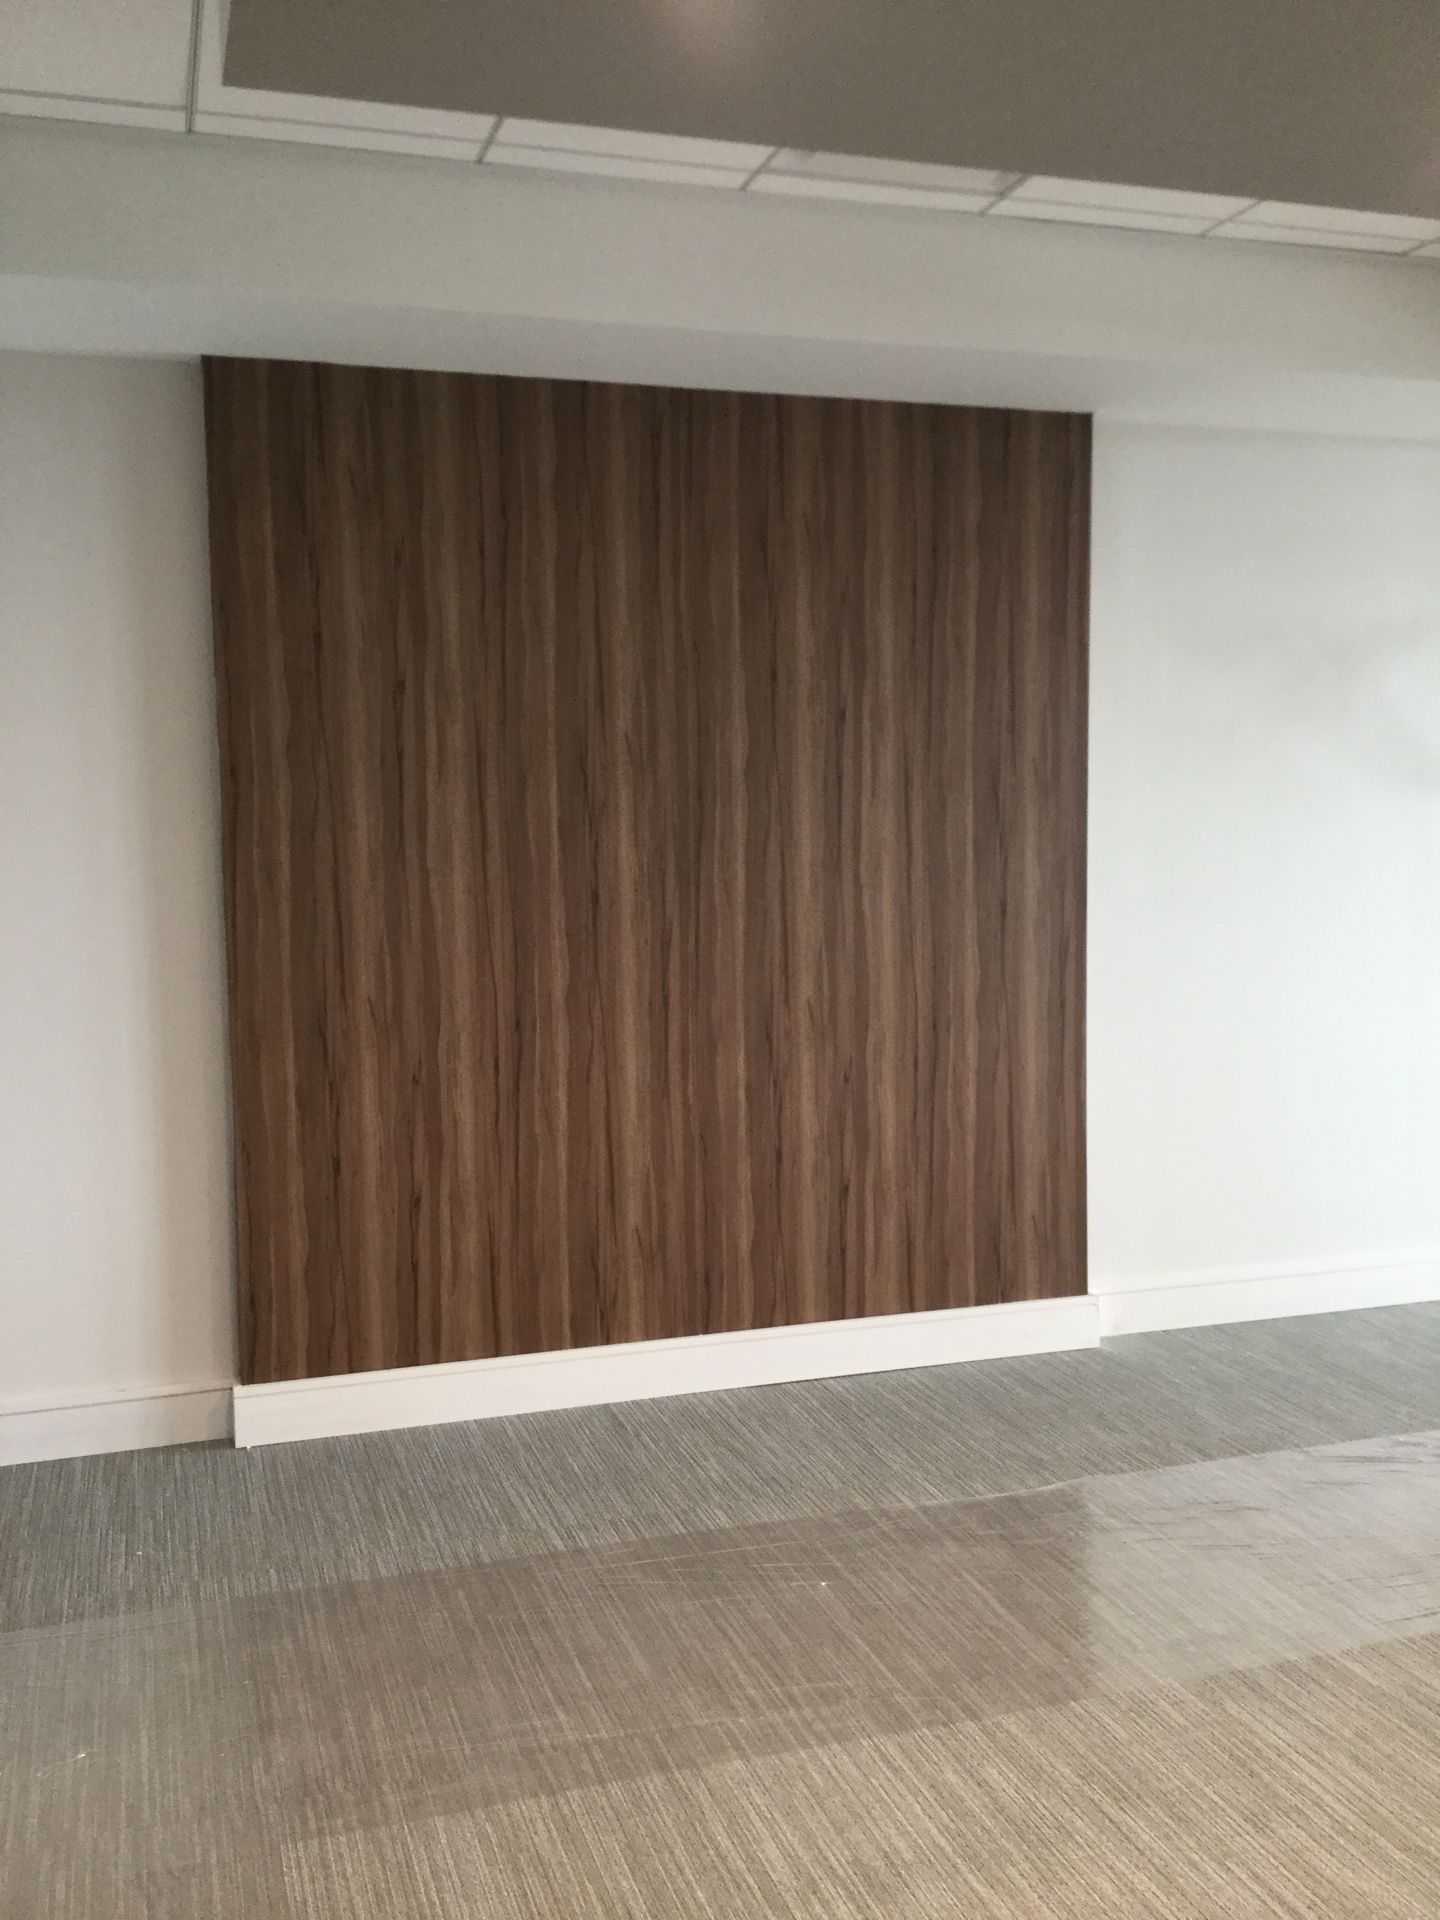 3M Di Noc Architectural Finish In Fine Wood Installation At The